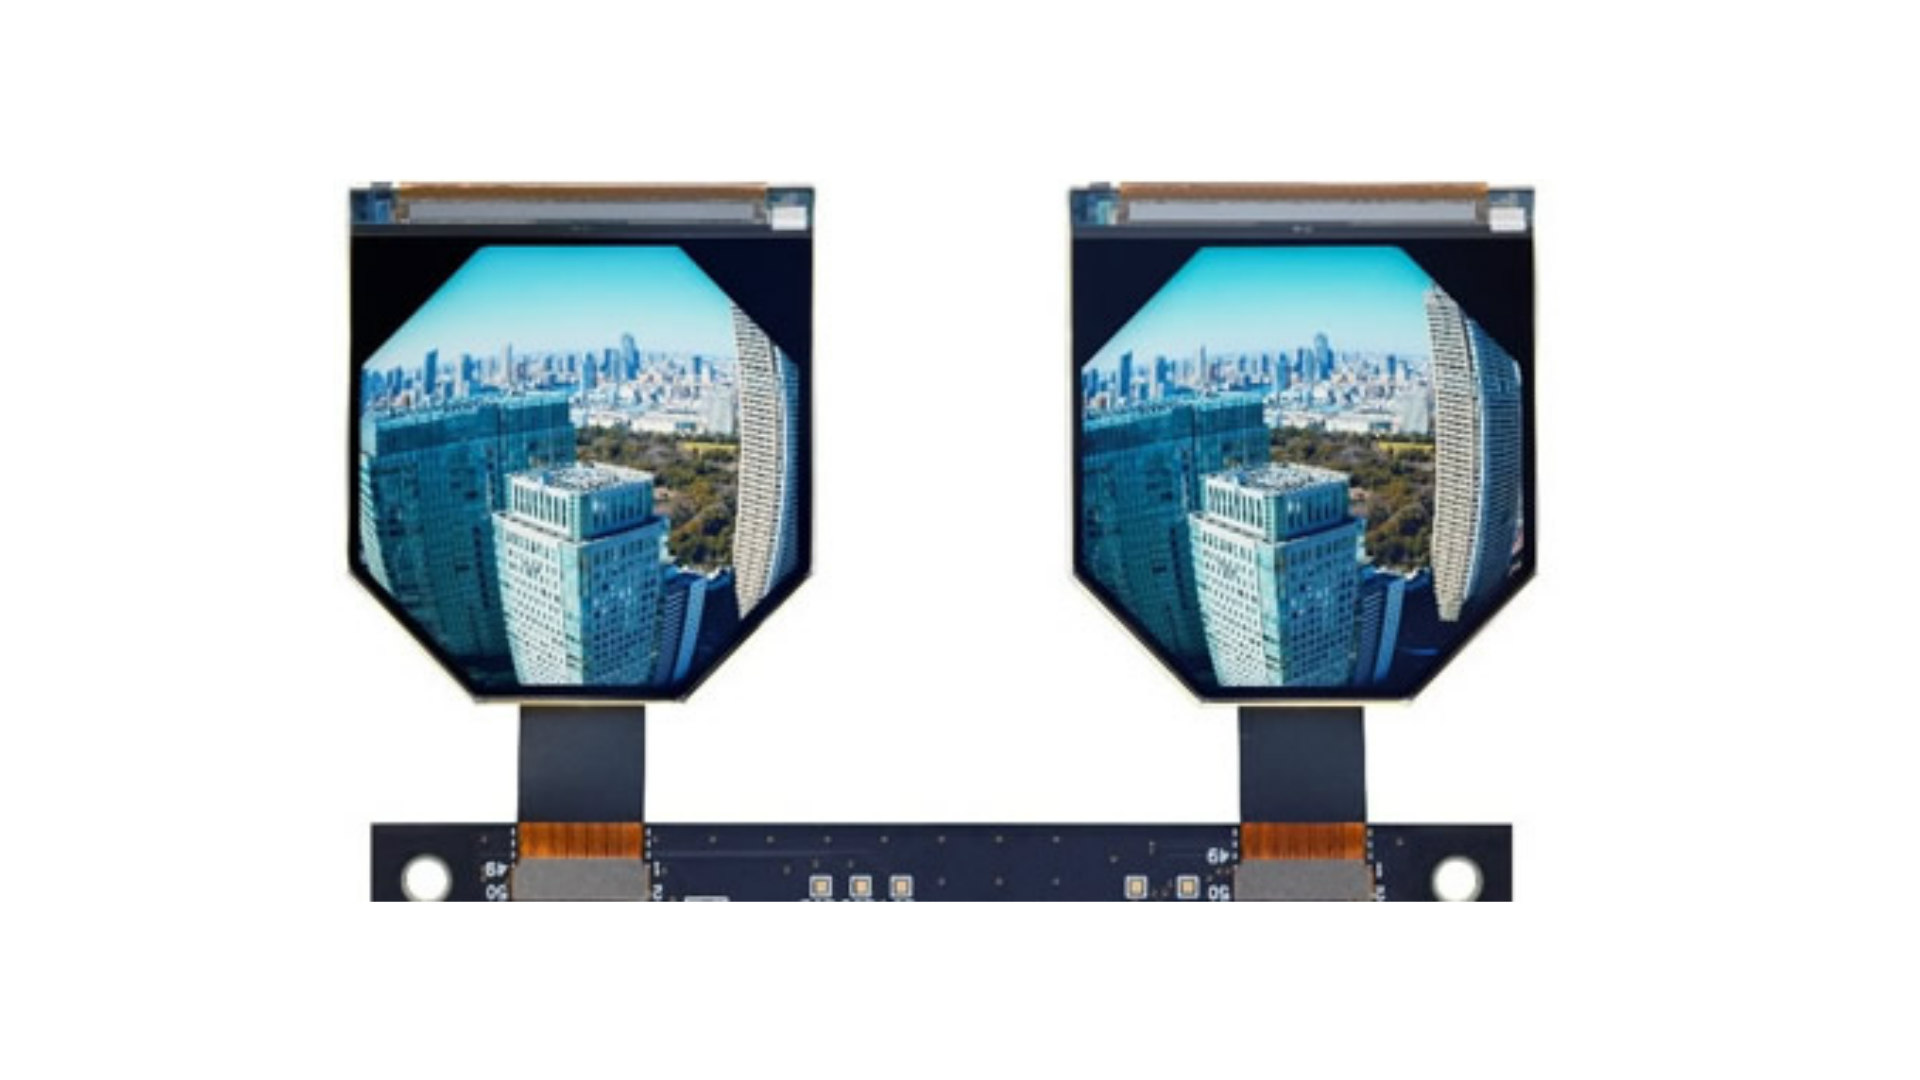 JDI Starts Mass Production on 1,058 ppi High Pixel Density LCD for VR Glasses - Road to VR